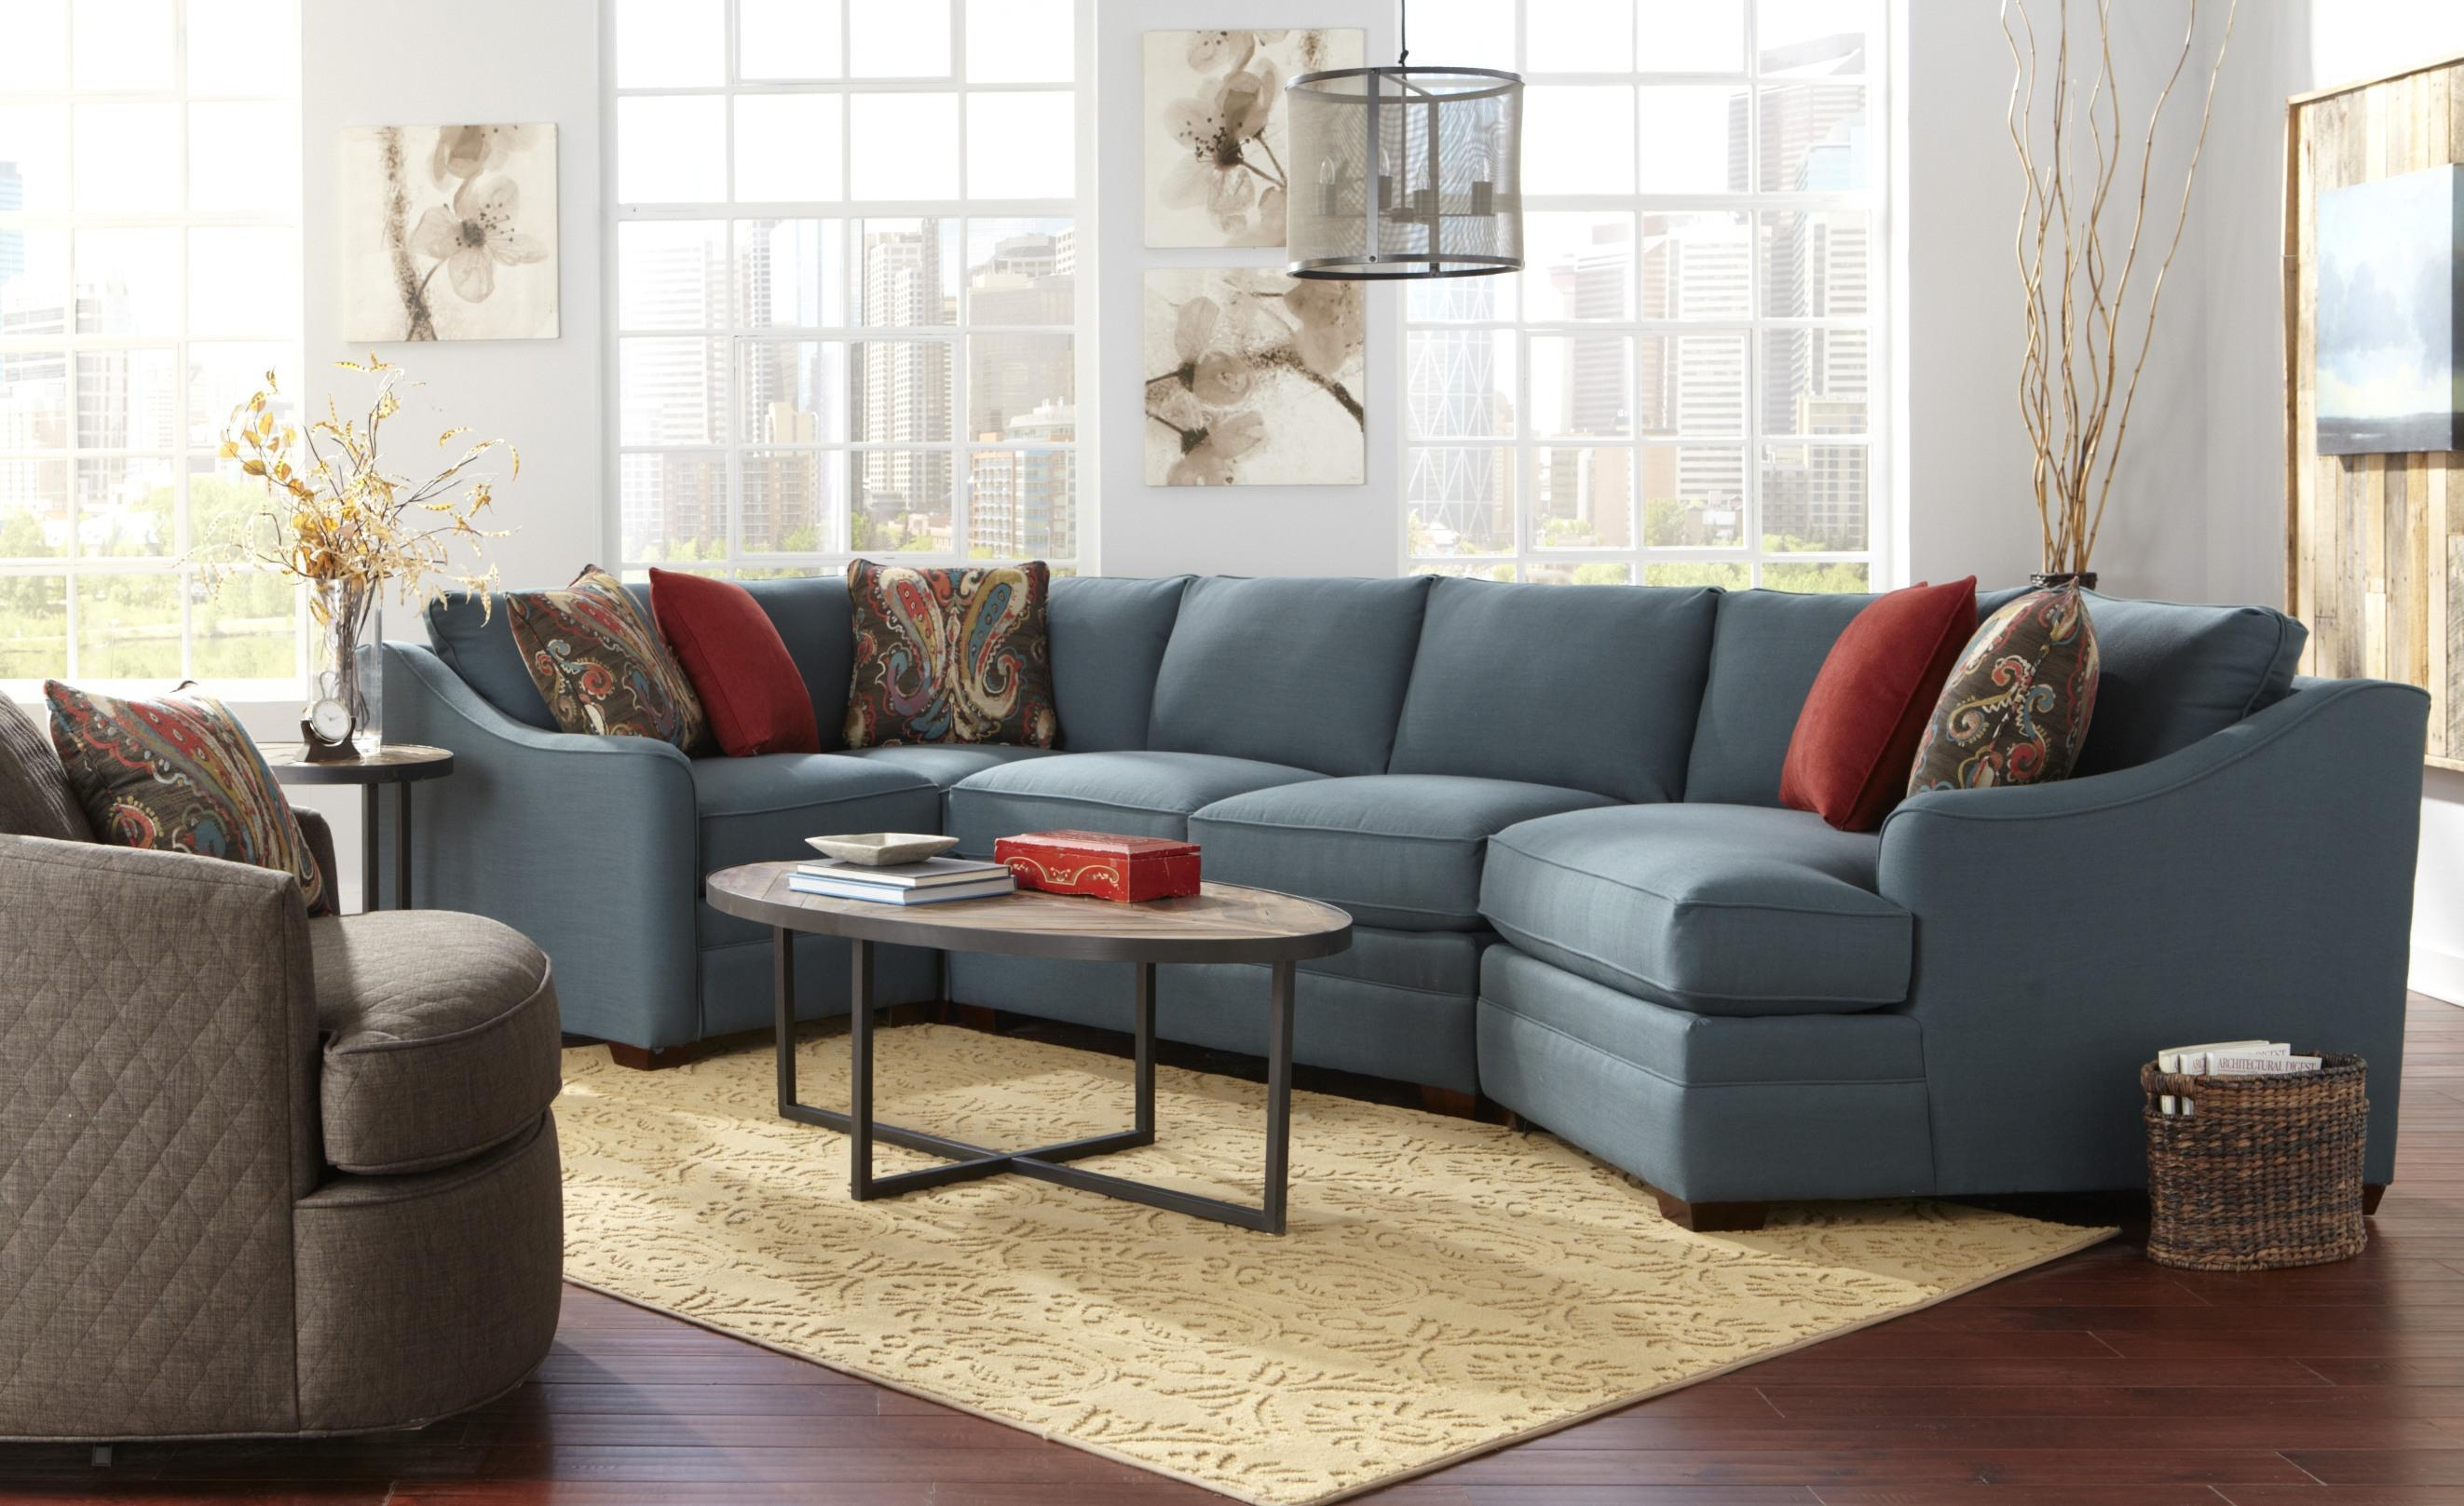 Furnitures: Fill Your Home With Luxury Craftmaster Furniture For Within Craftsman Sectional Sofa (View 2 of 15)